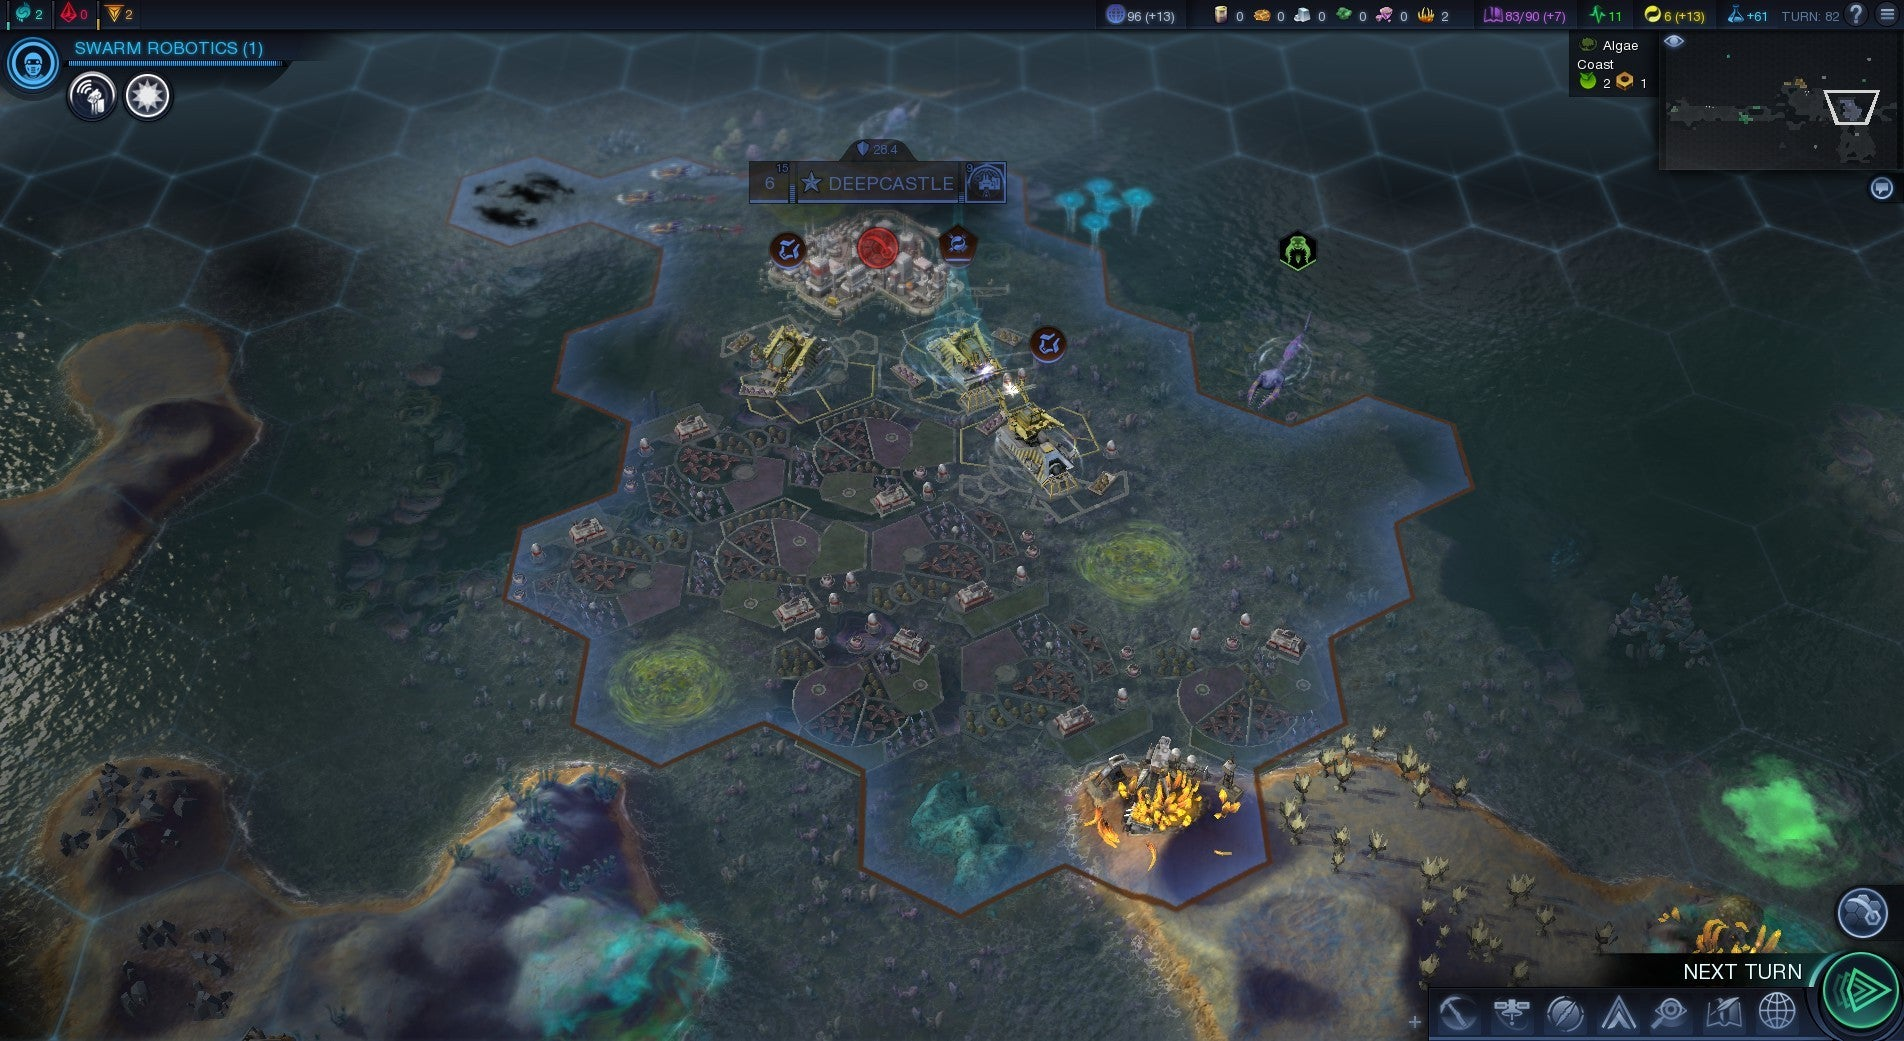 Civilization beyond earth rising tide expansion review lifting and you will know us by the trail of hexes gumiabroncs Choice Image